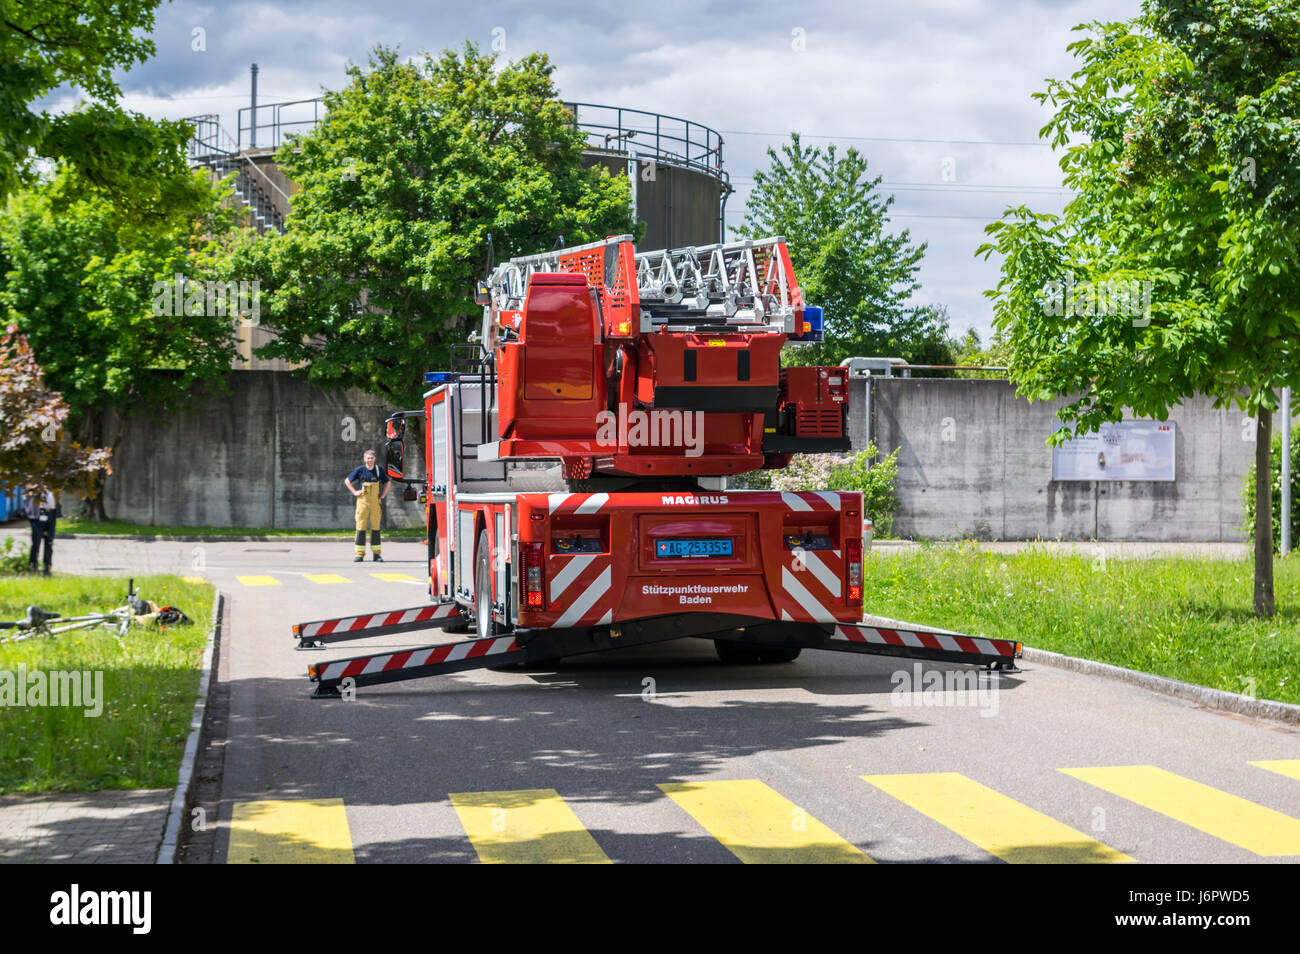 Rear view of an Iveco Magirus 160E30 turntable ladder truck of a Swiss fire brigade. Outriggers/jacks extended, but ladder still retracted. Stock Photo